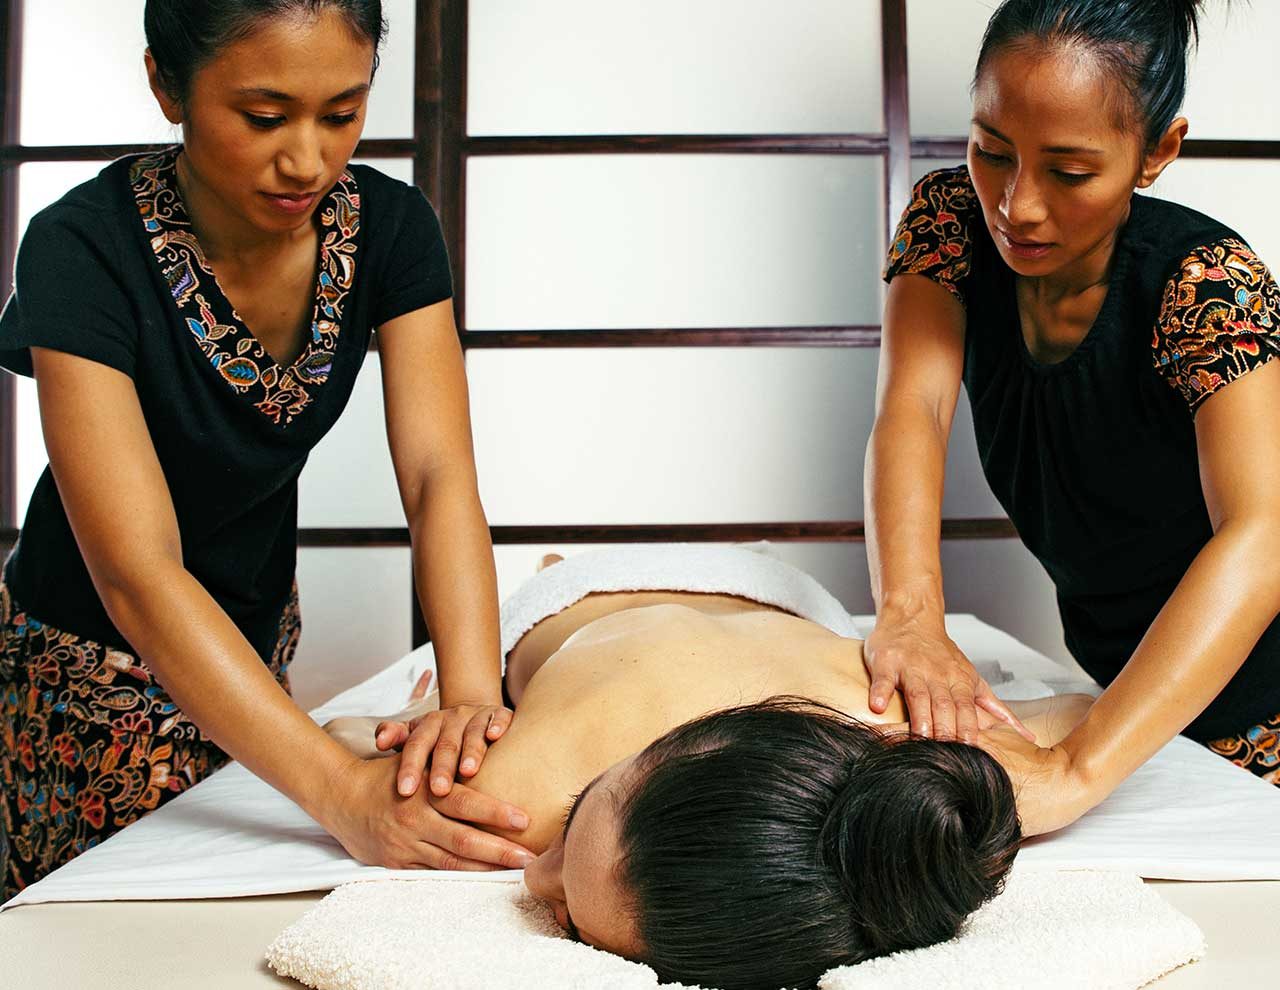 Oriental massage center, four hands massage Ayurveda Abhyanga